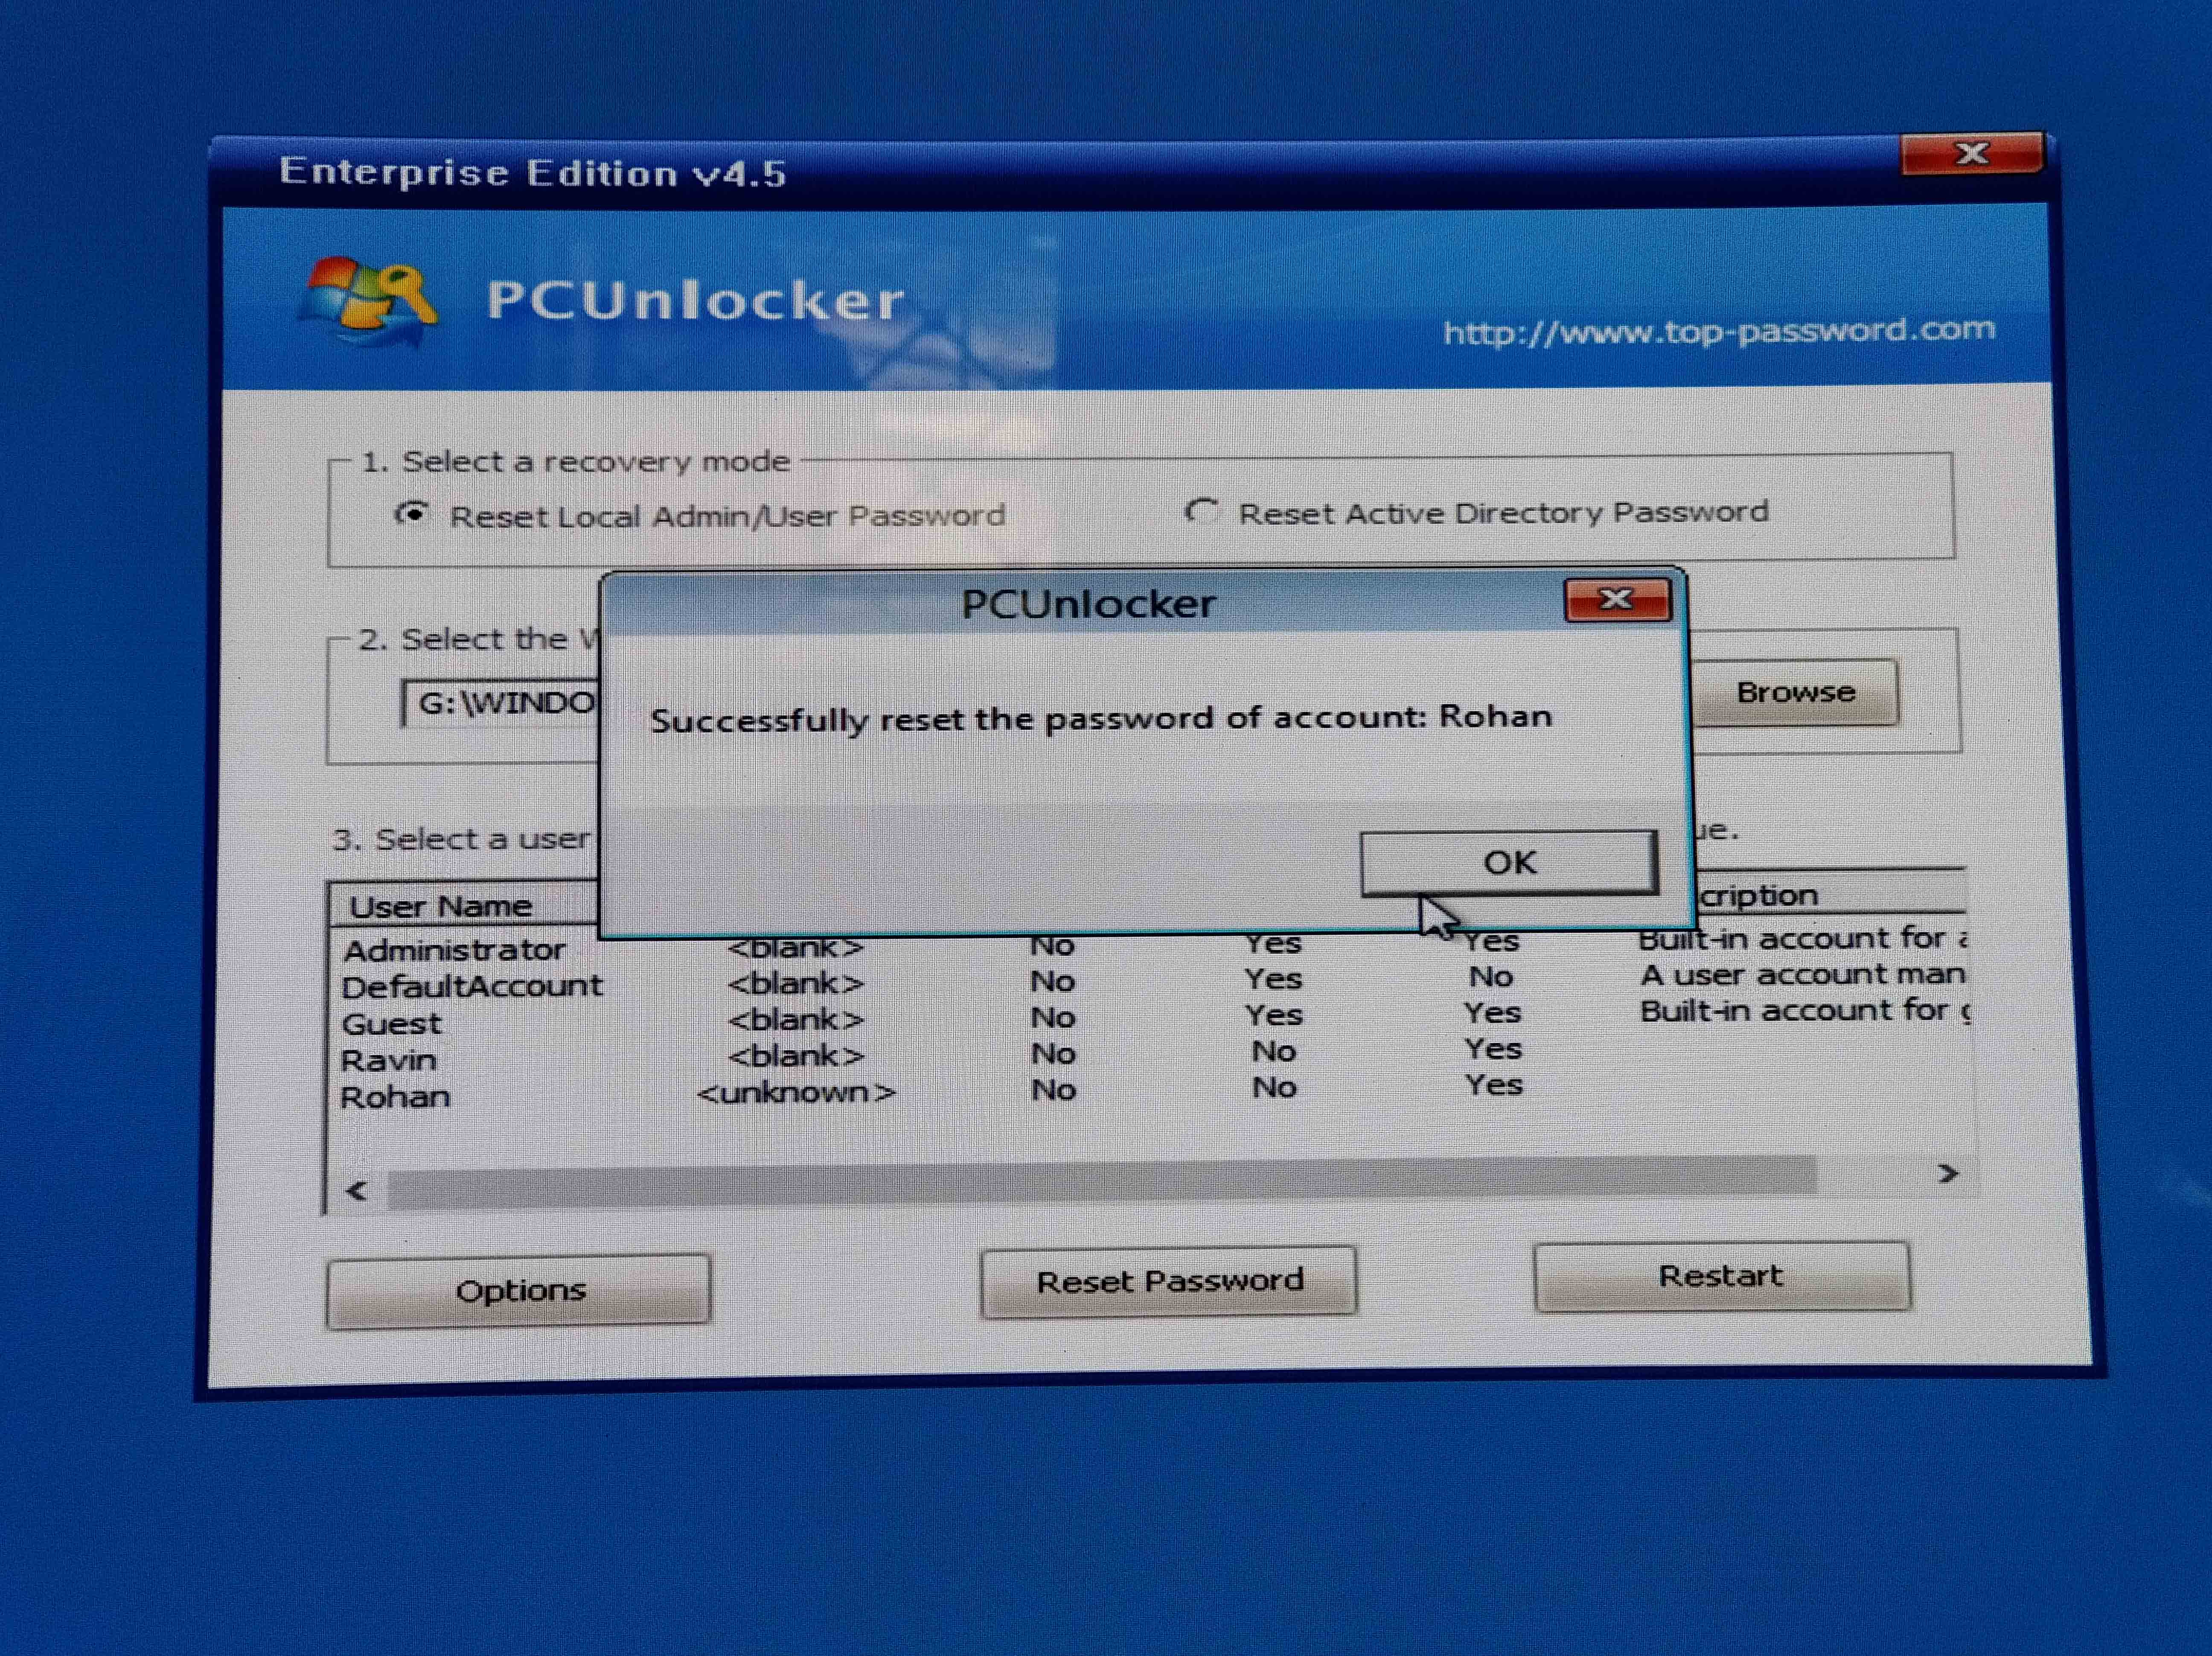 How to use pcunlocker enterprise | PCUnlocker WinPE 3 8 0